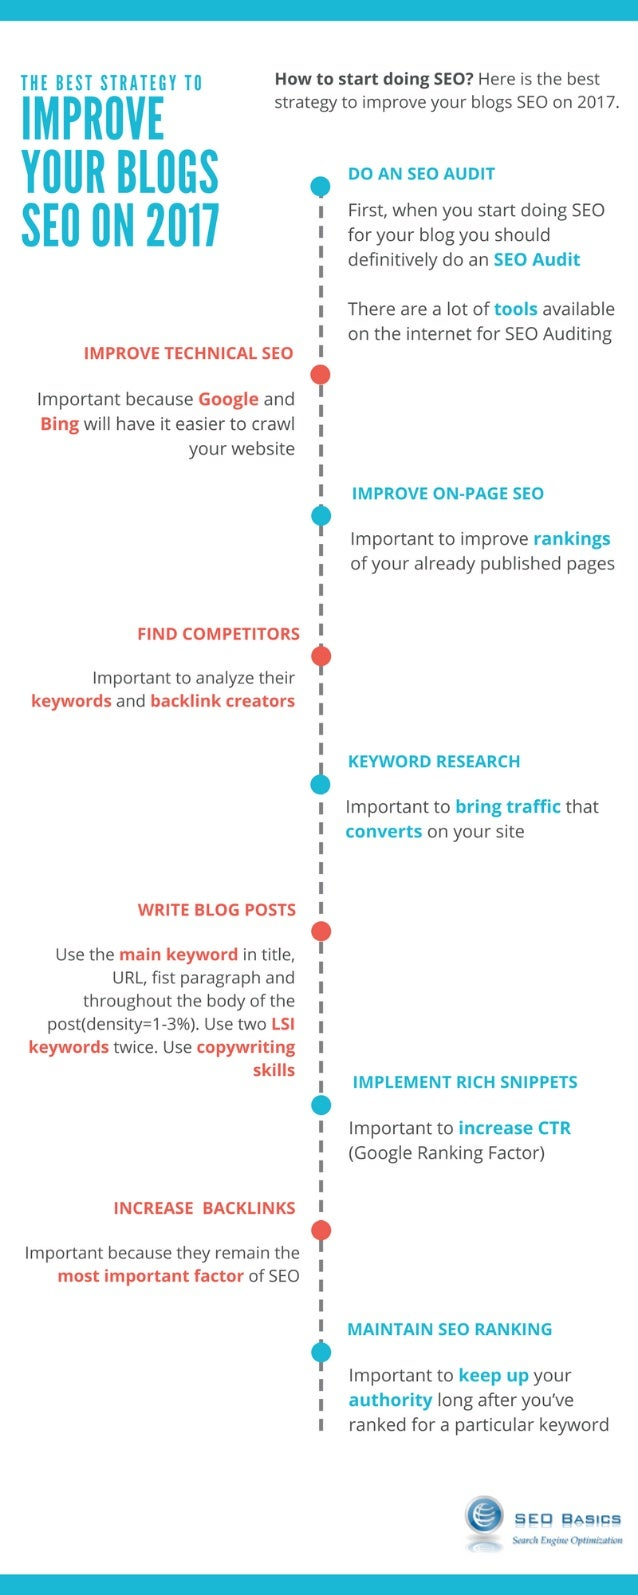 The Best Strategy To Improve Your Blogs SEO